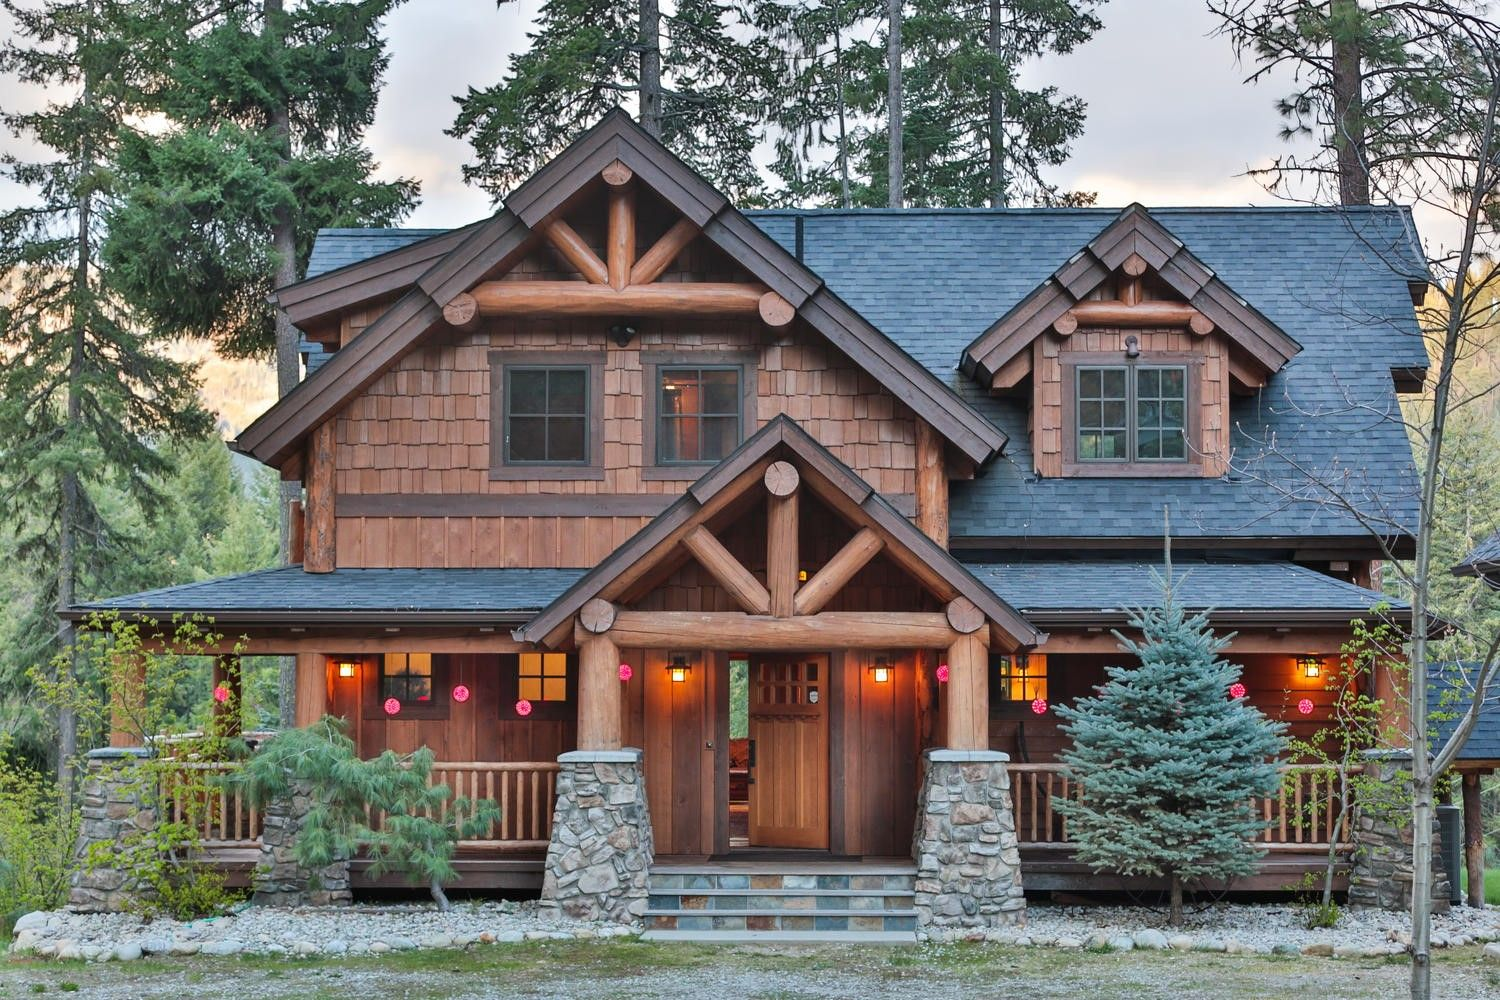 Outstanding Timber Frame Home W 3 Bedrooms Top Timber Homes Rustic Houses Exterior Rustic House Timber Frame Home Plans